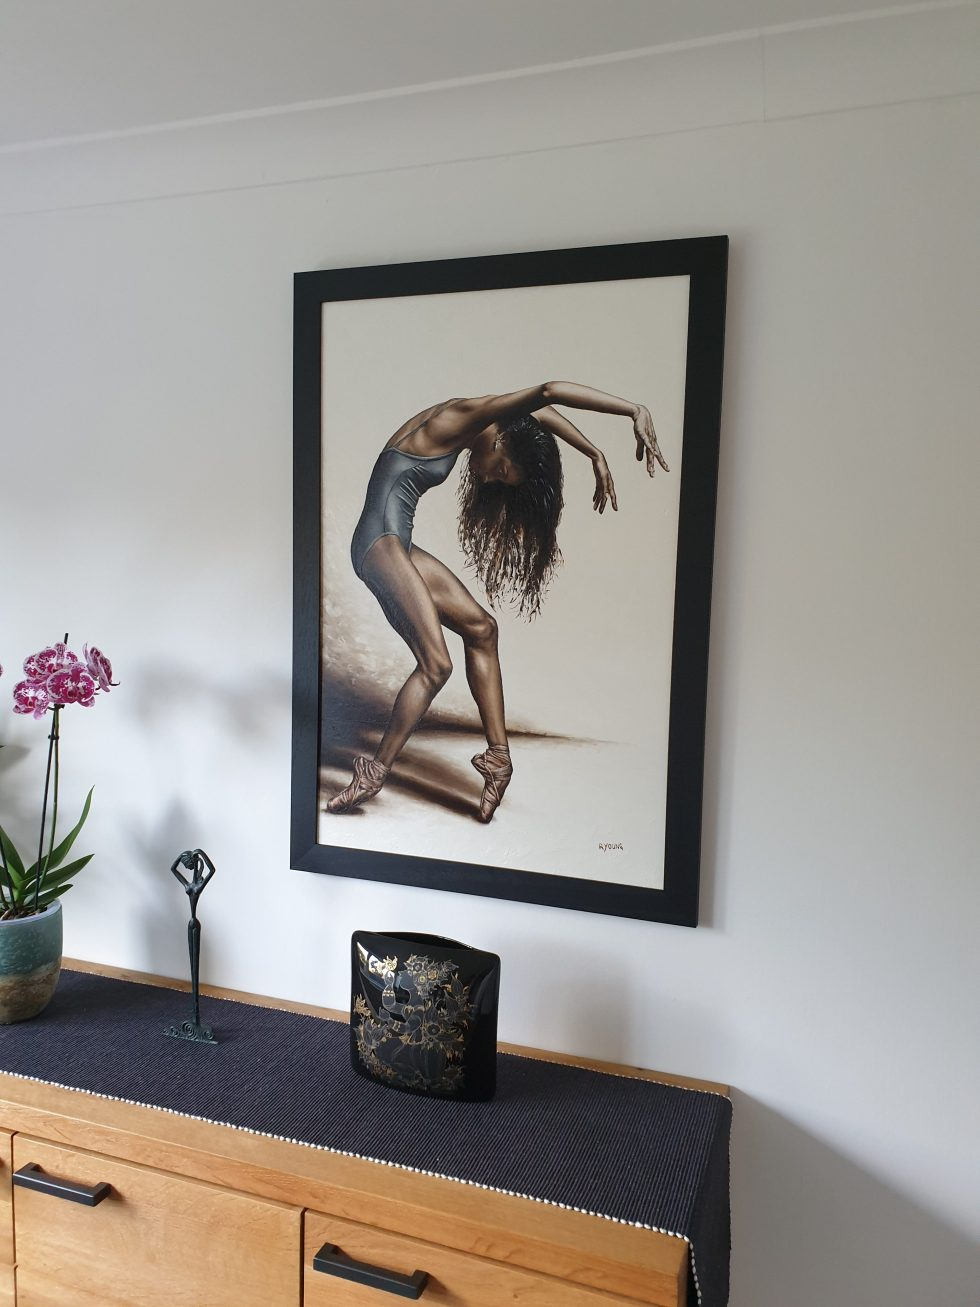 Dance Intensity framed and hung in my home for reference